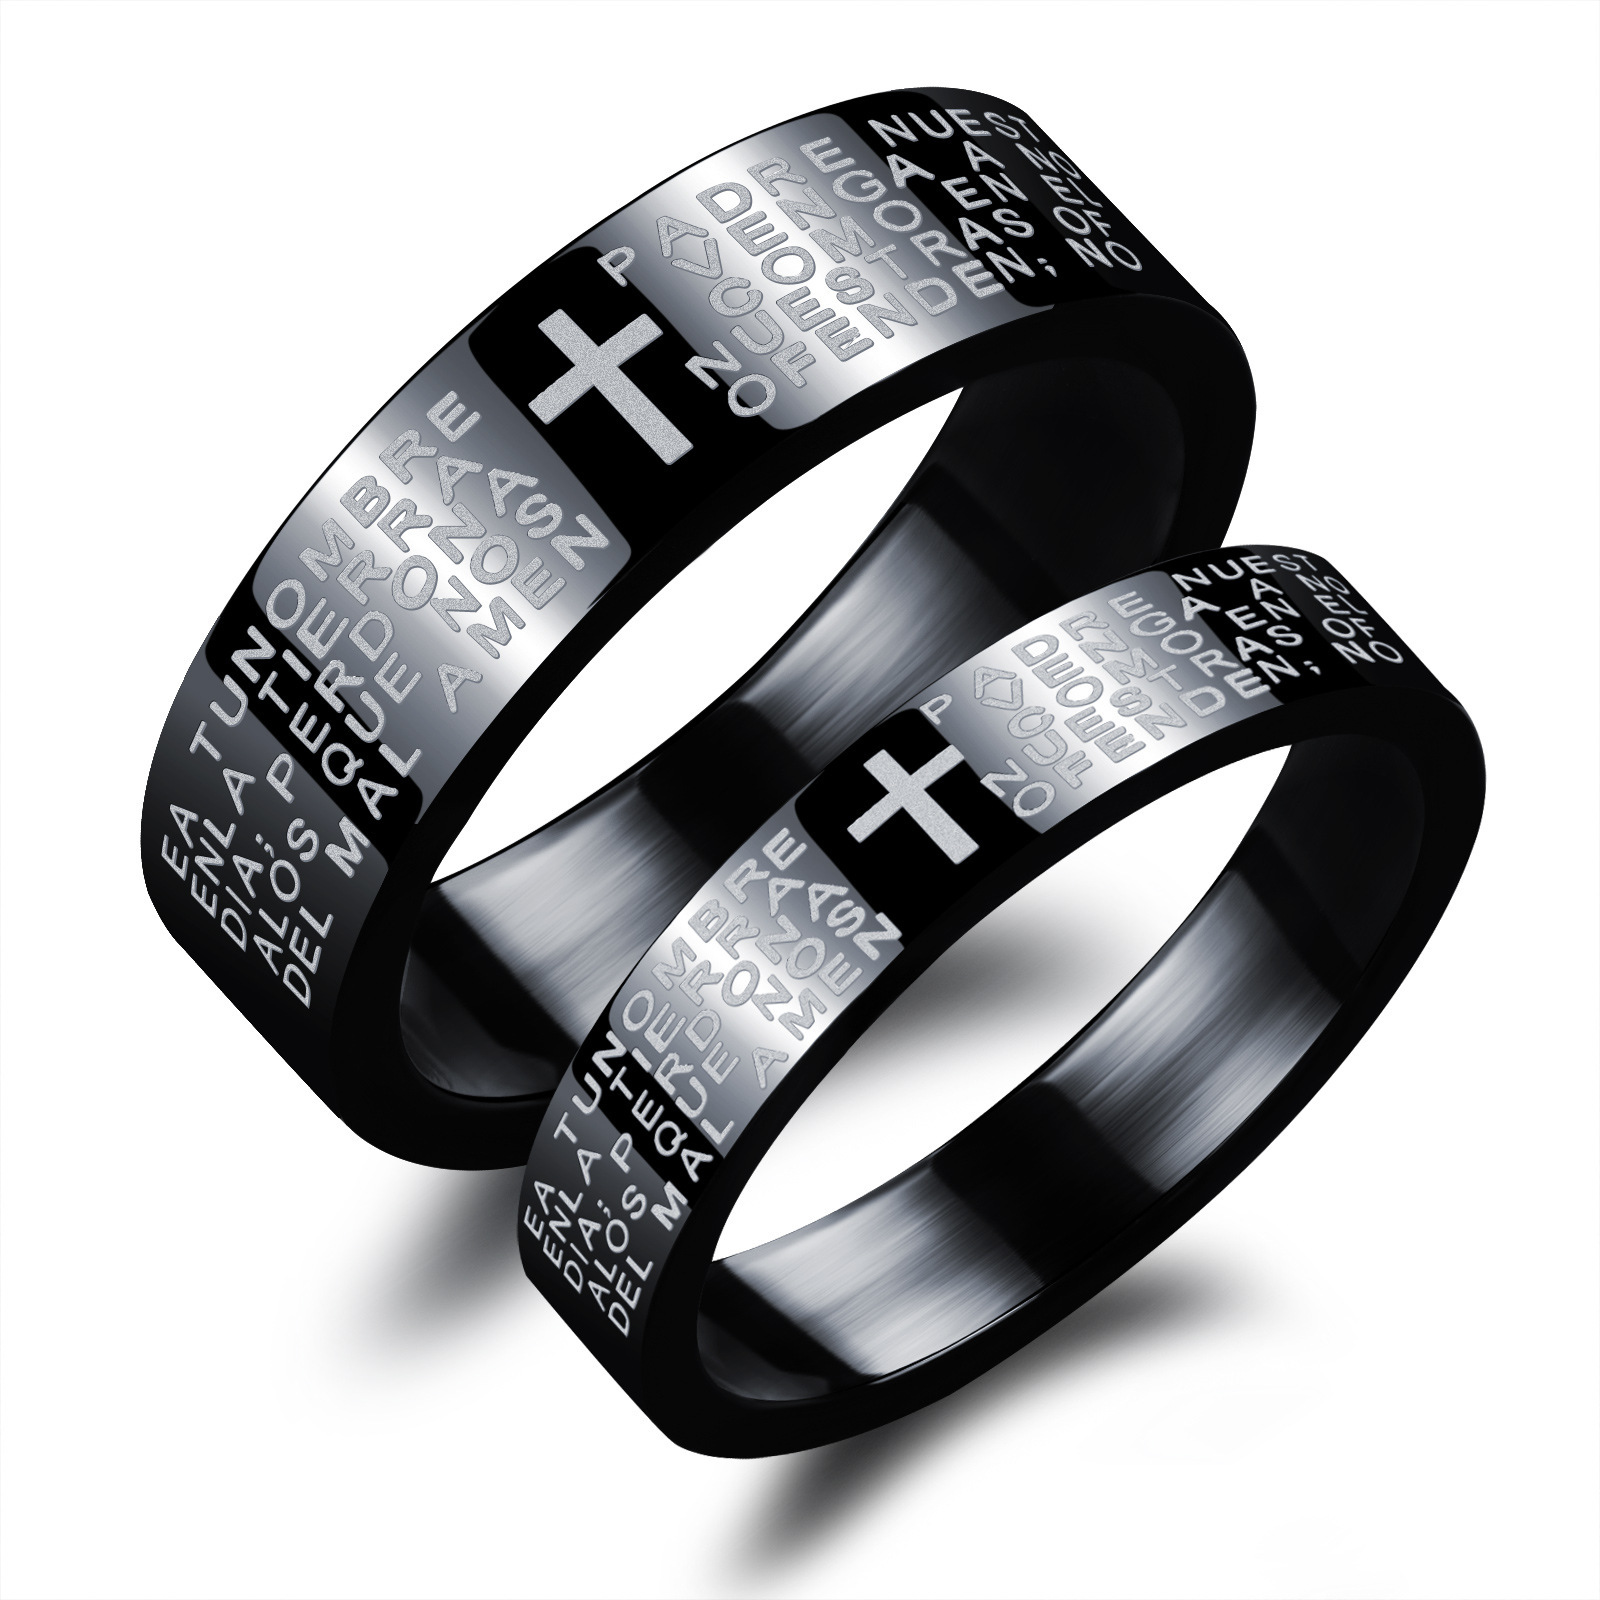 Aliexpresscom Buy Spanish Bible Cross Black Couple Rings Set